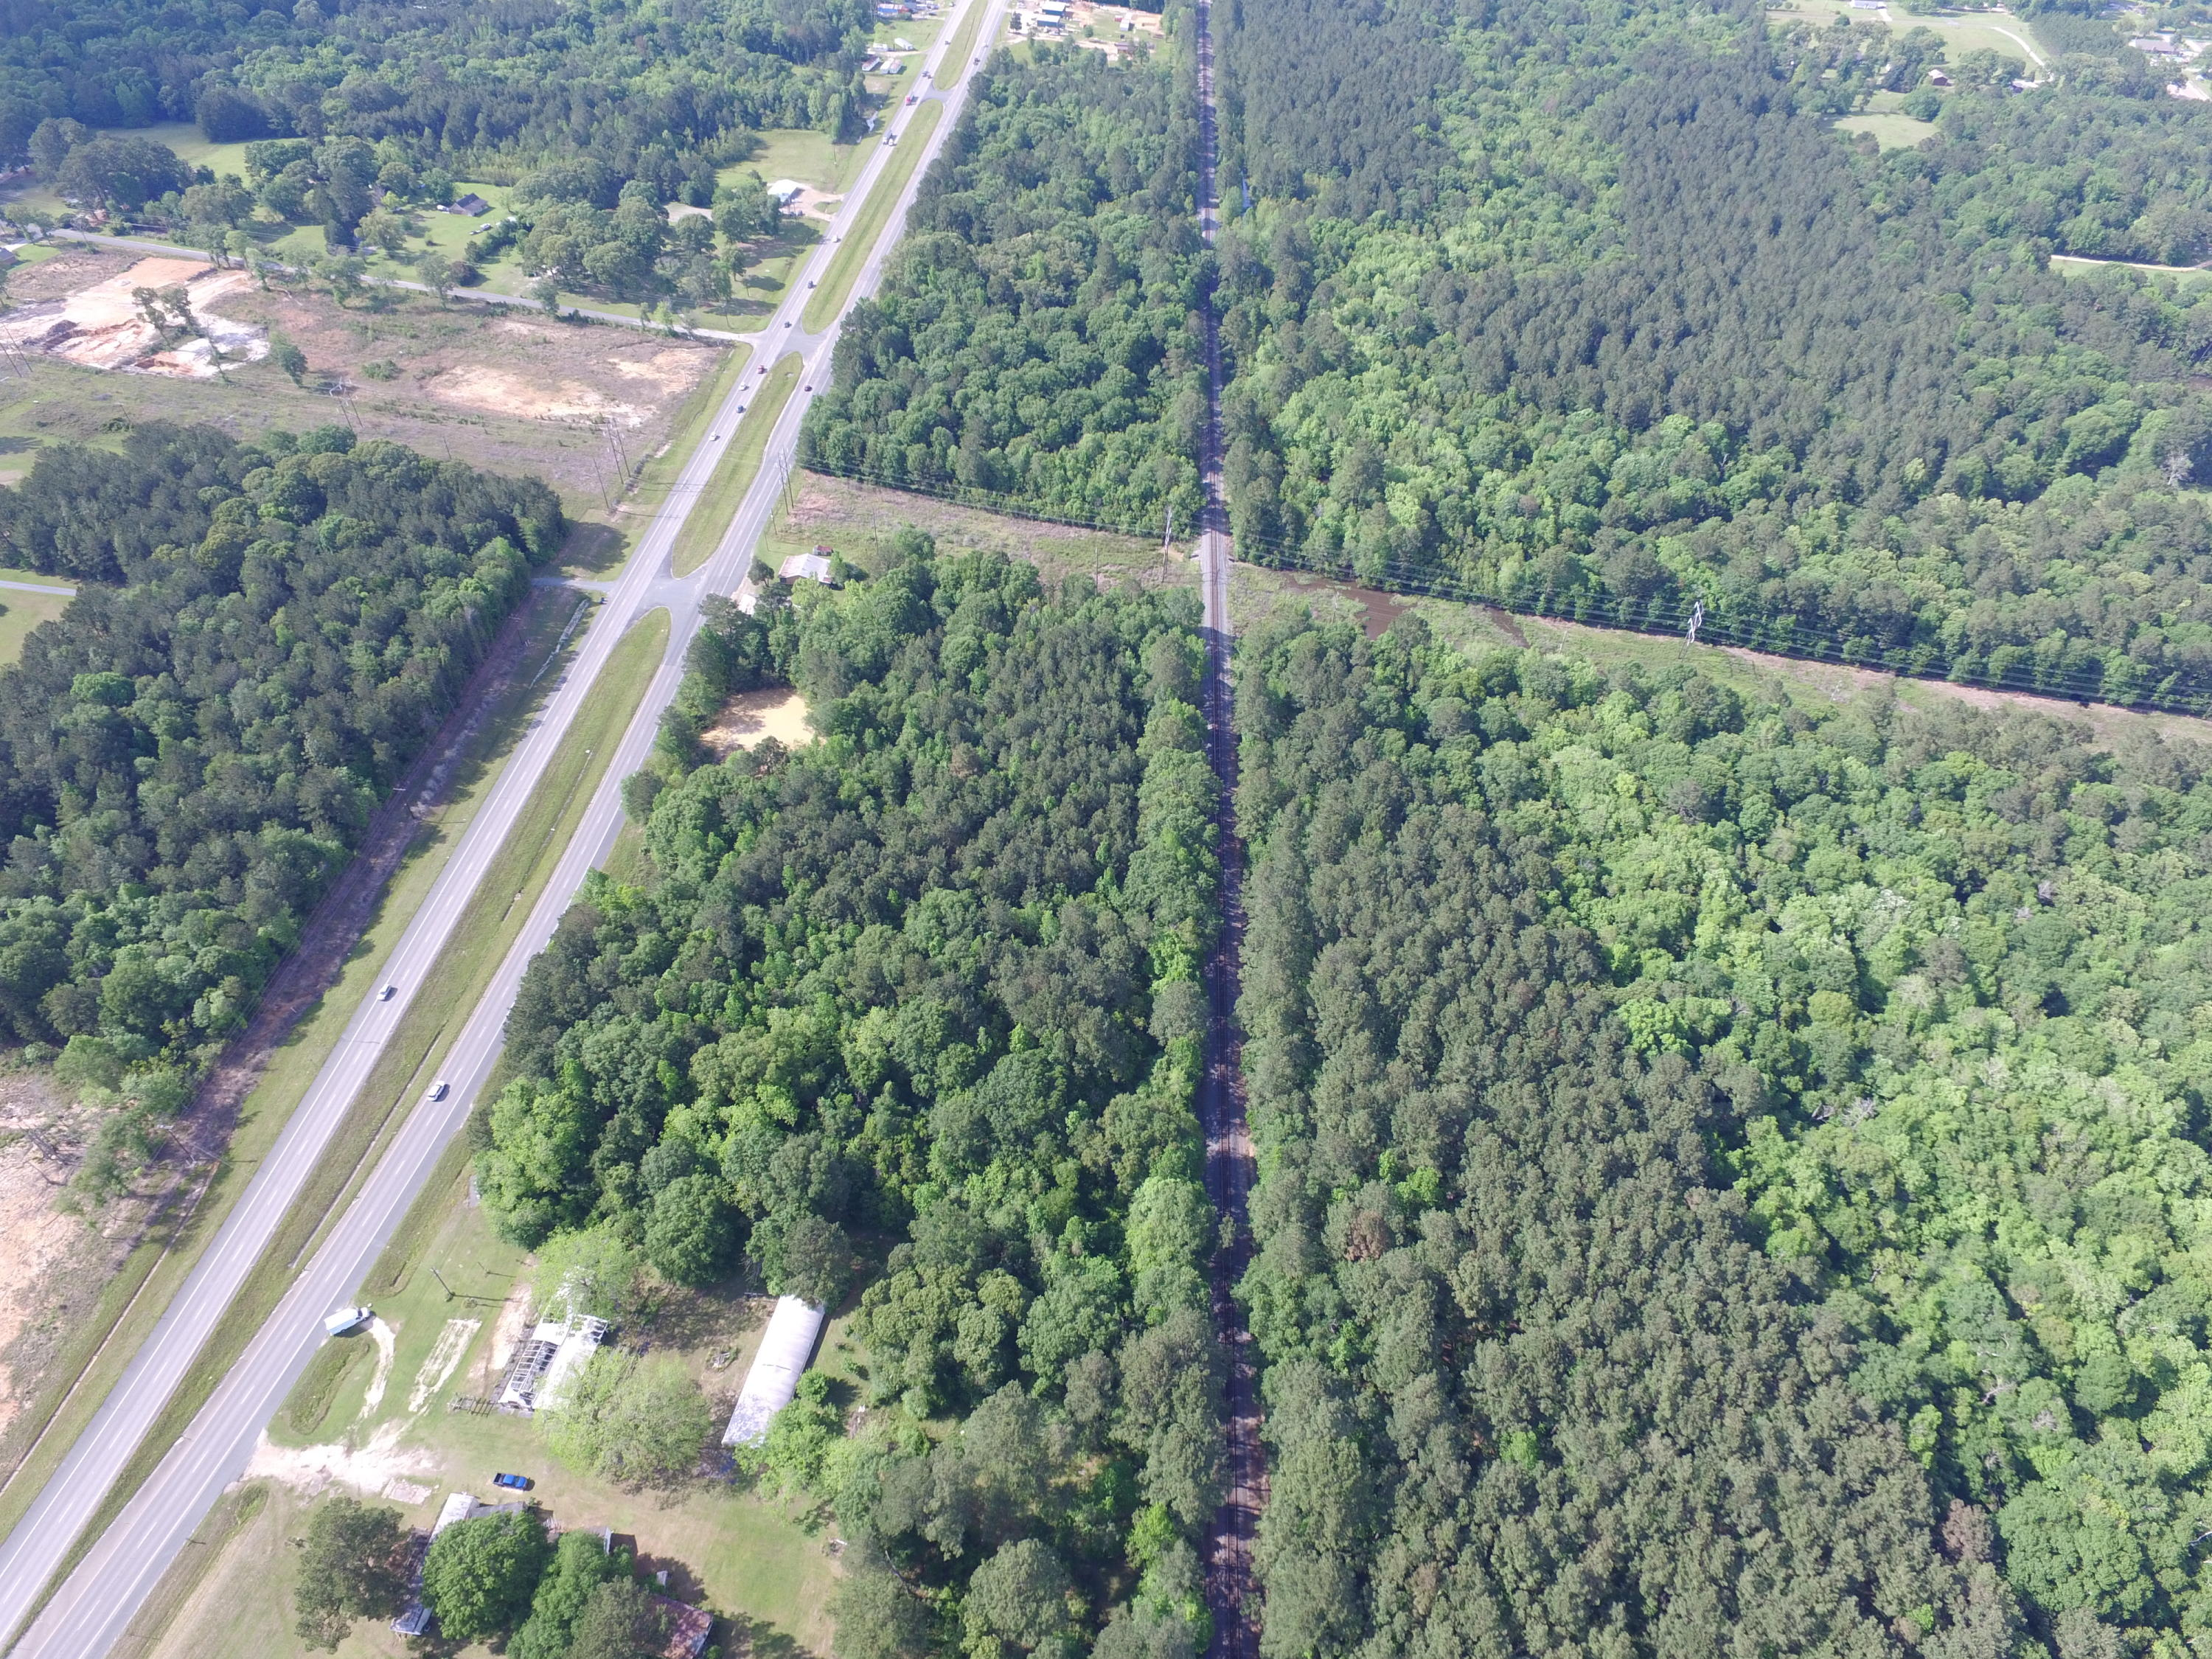 DeRidder land for sale,  TBD Hwy 171, DeRidder LA - $129,000